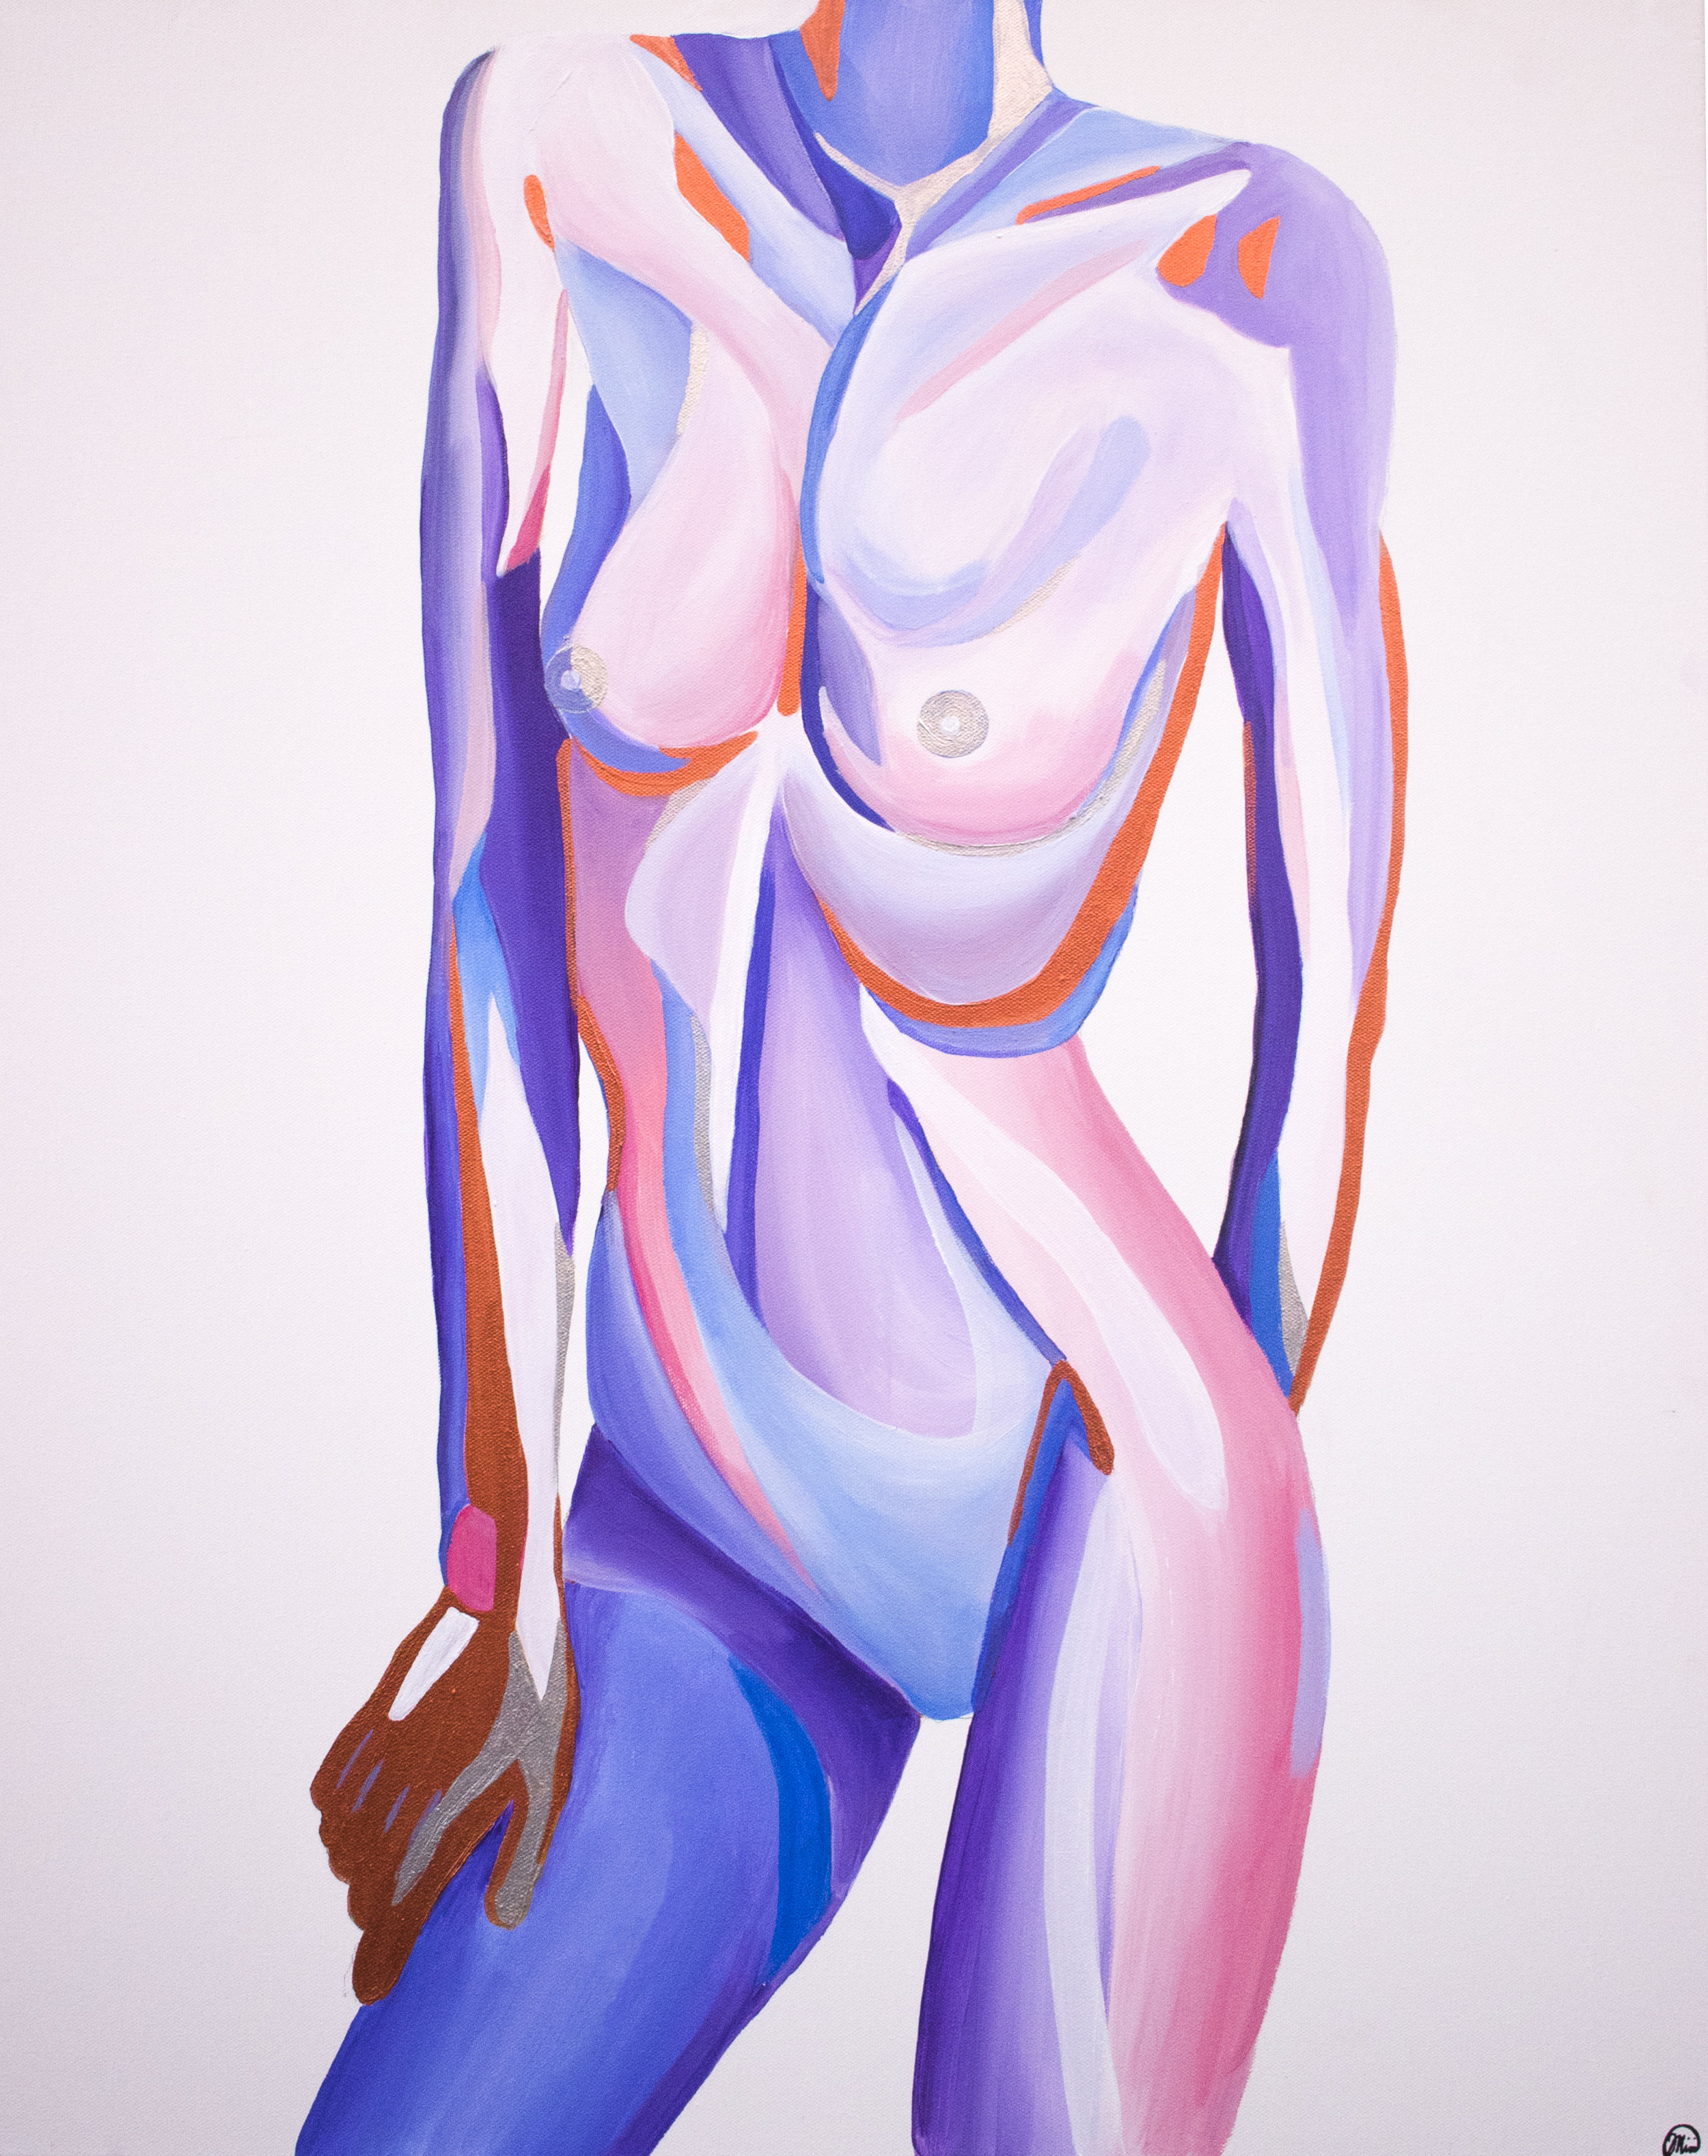 female figure nude.jpg